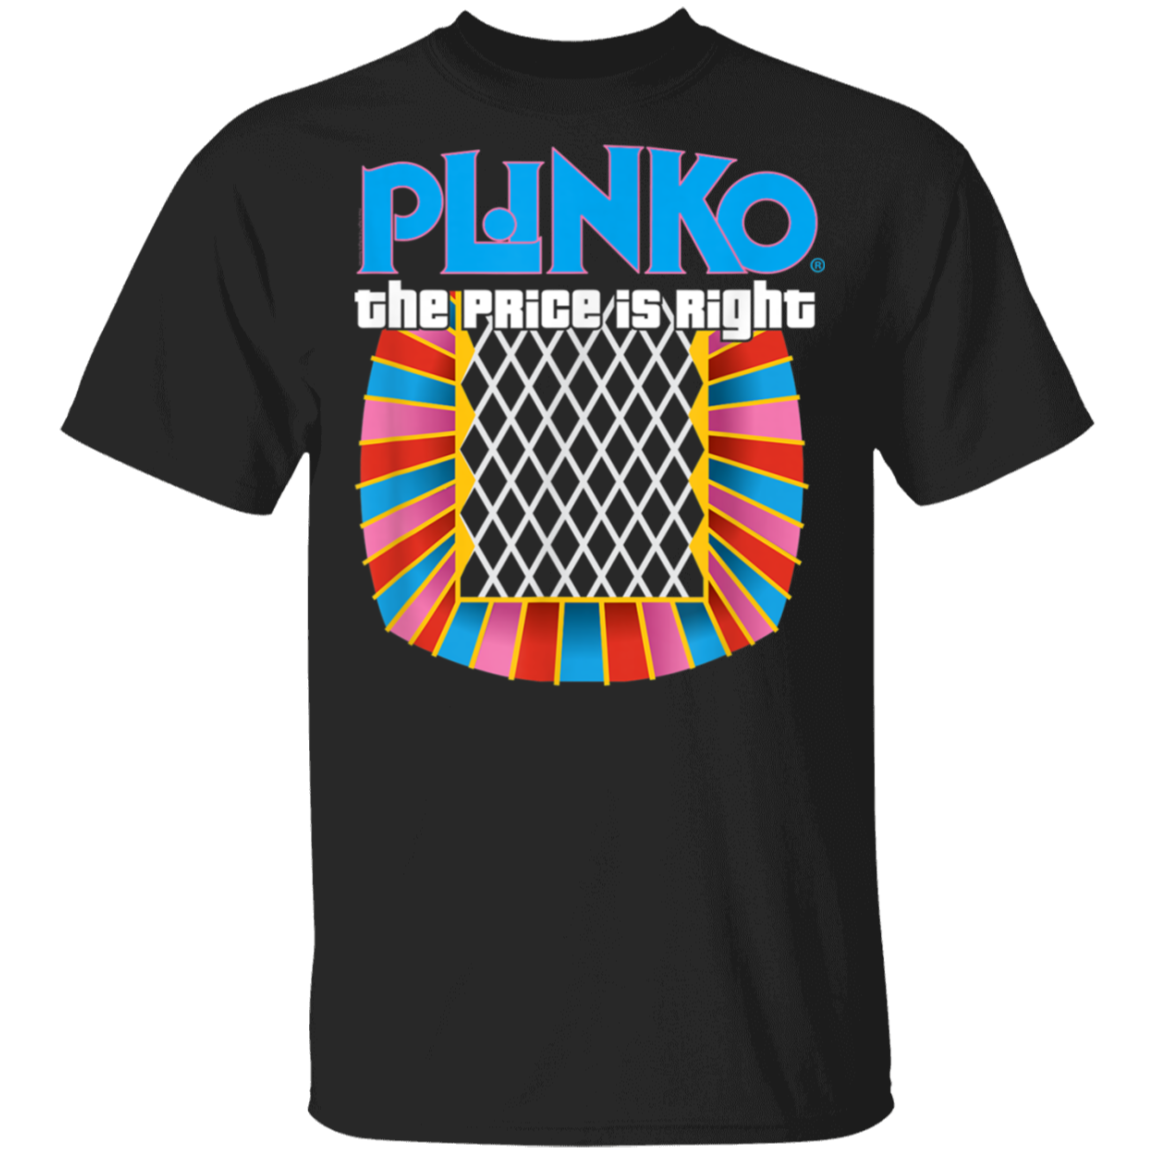 Price is Right Plinko  Details about The Price Is Right  Plinko Tv Fan shirt Hoodie Shirt